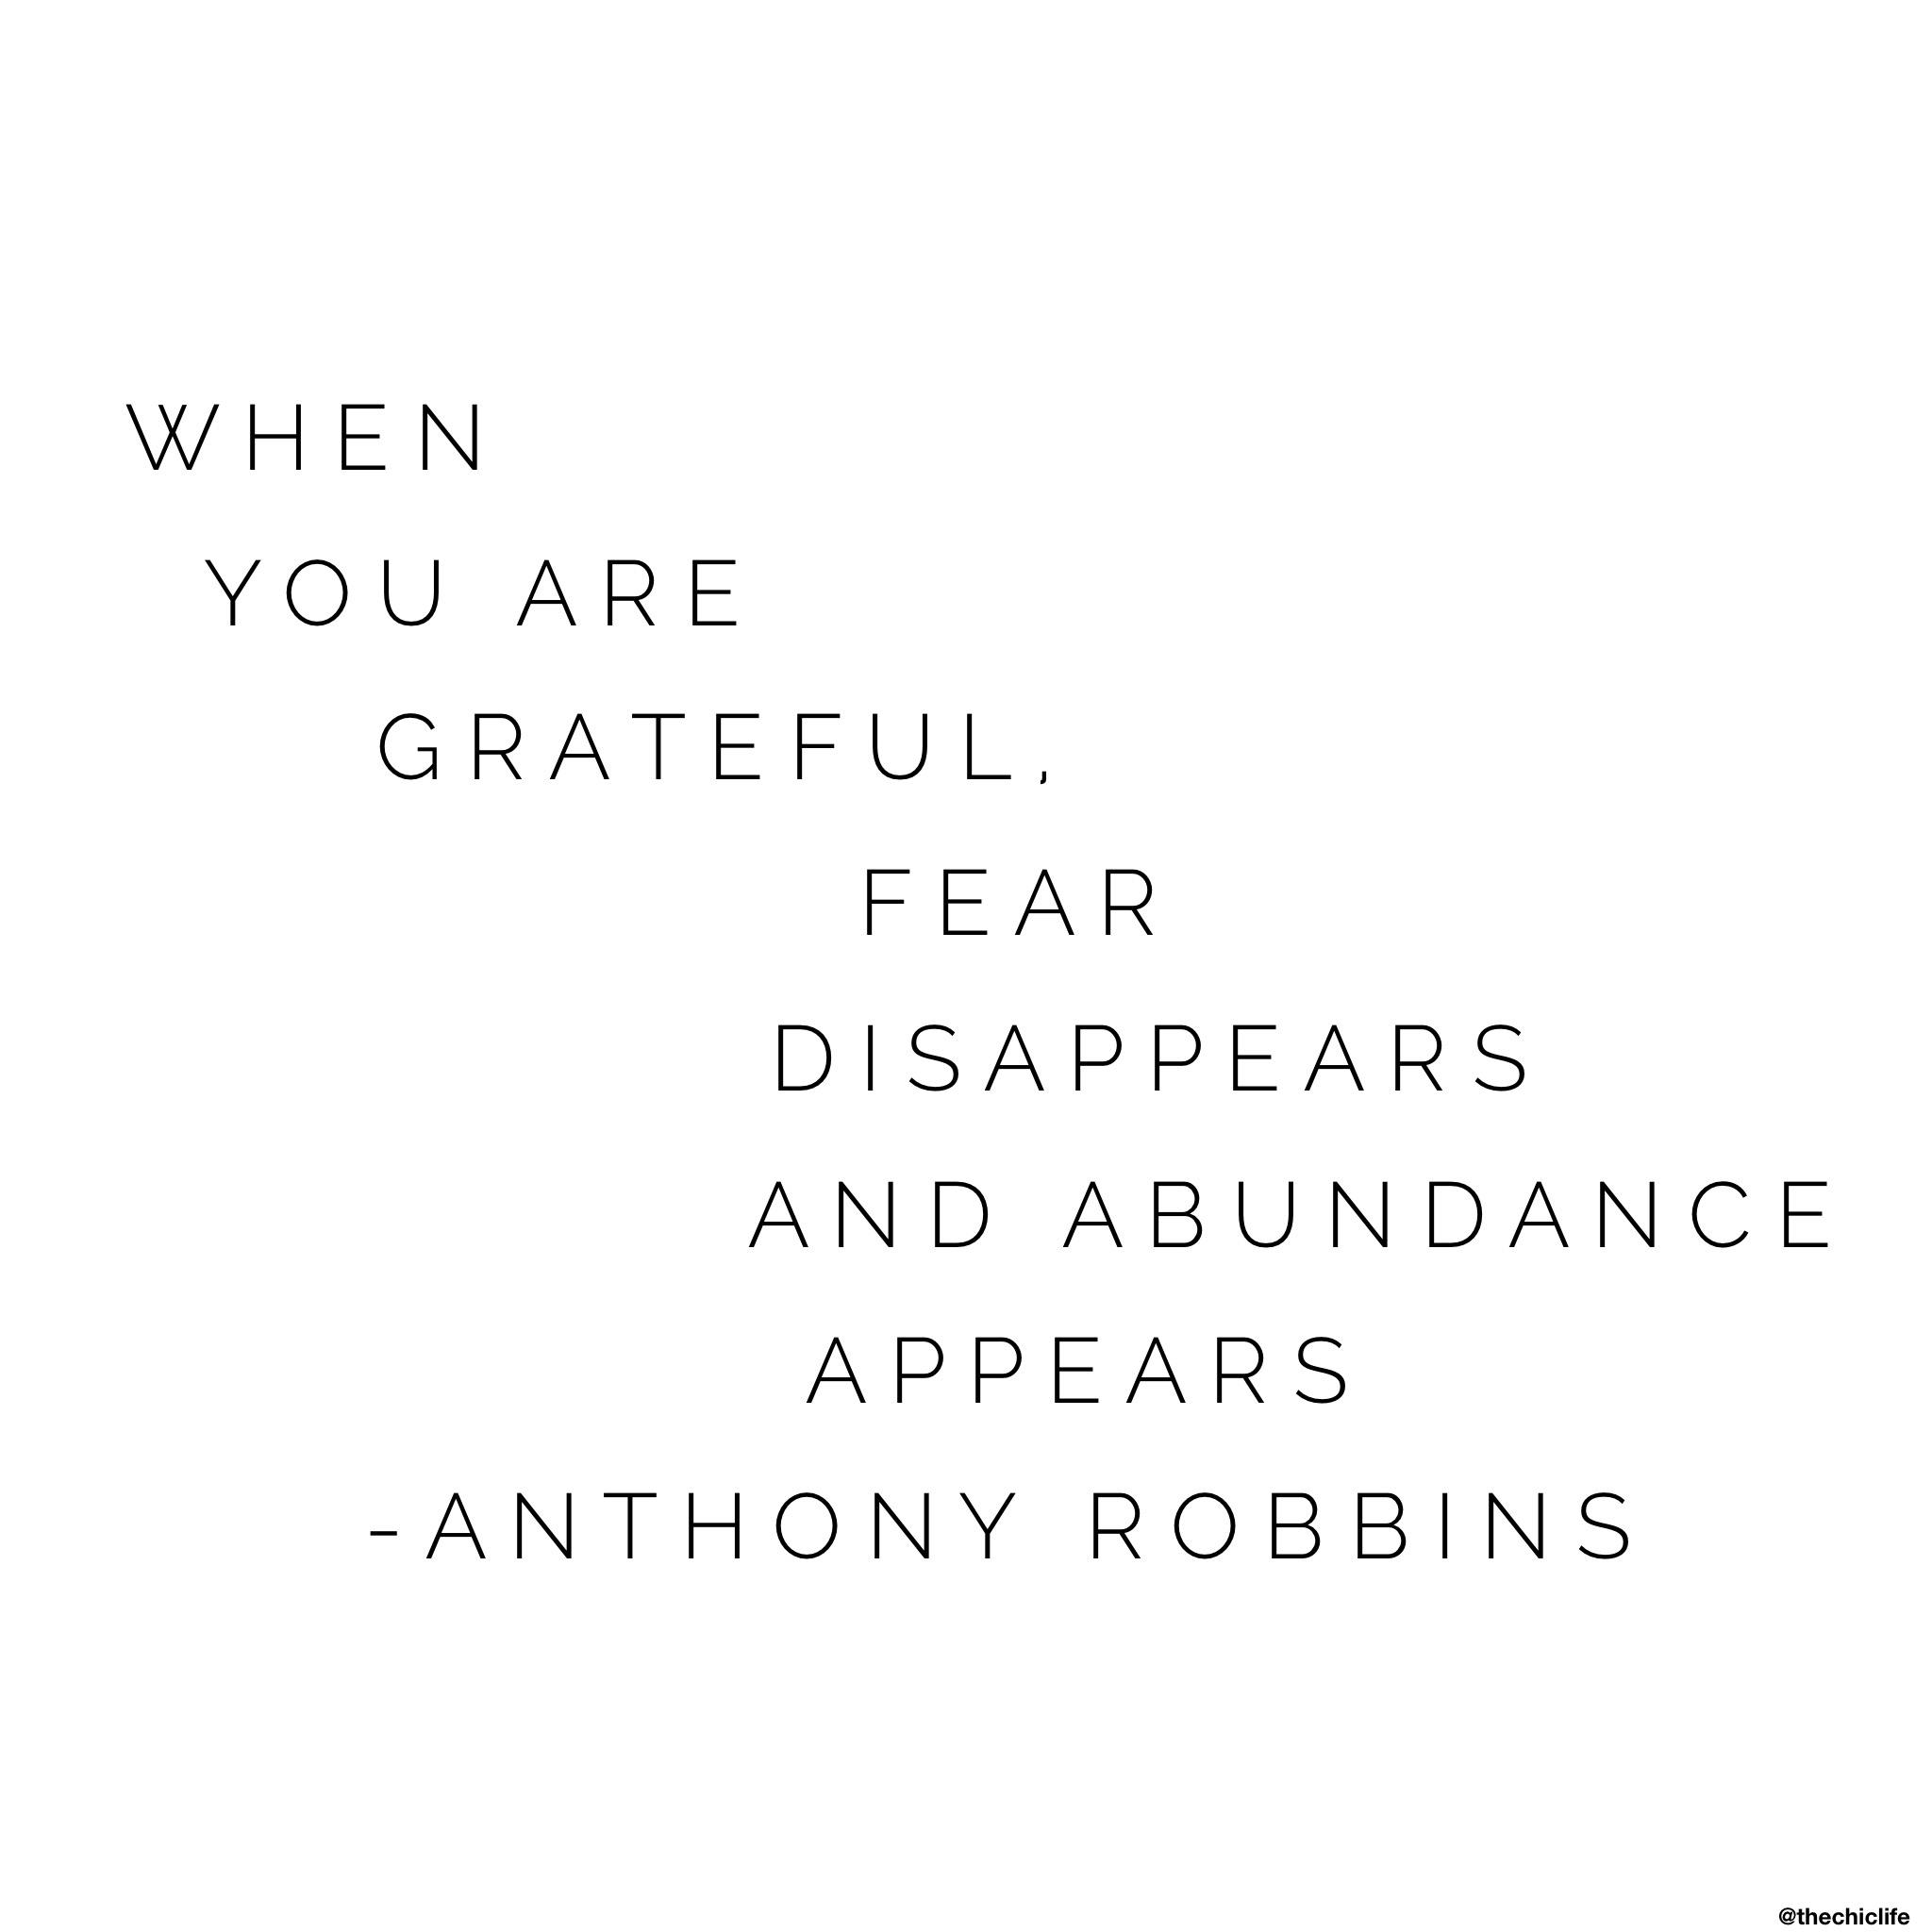 When You Are Grateful…